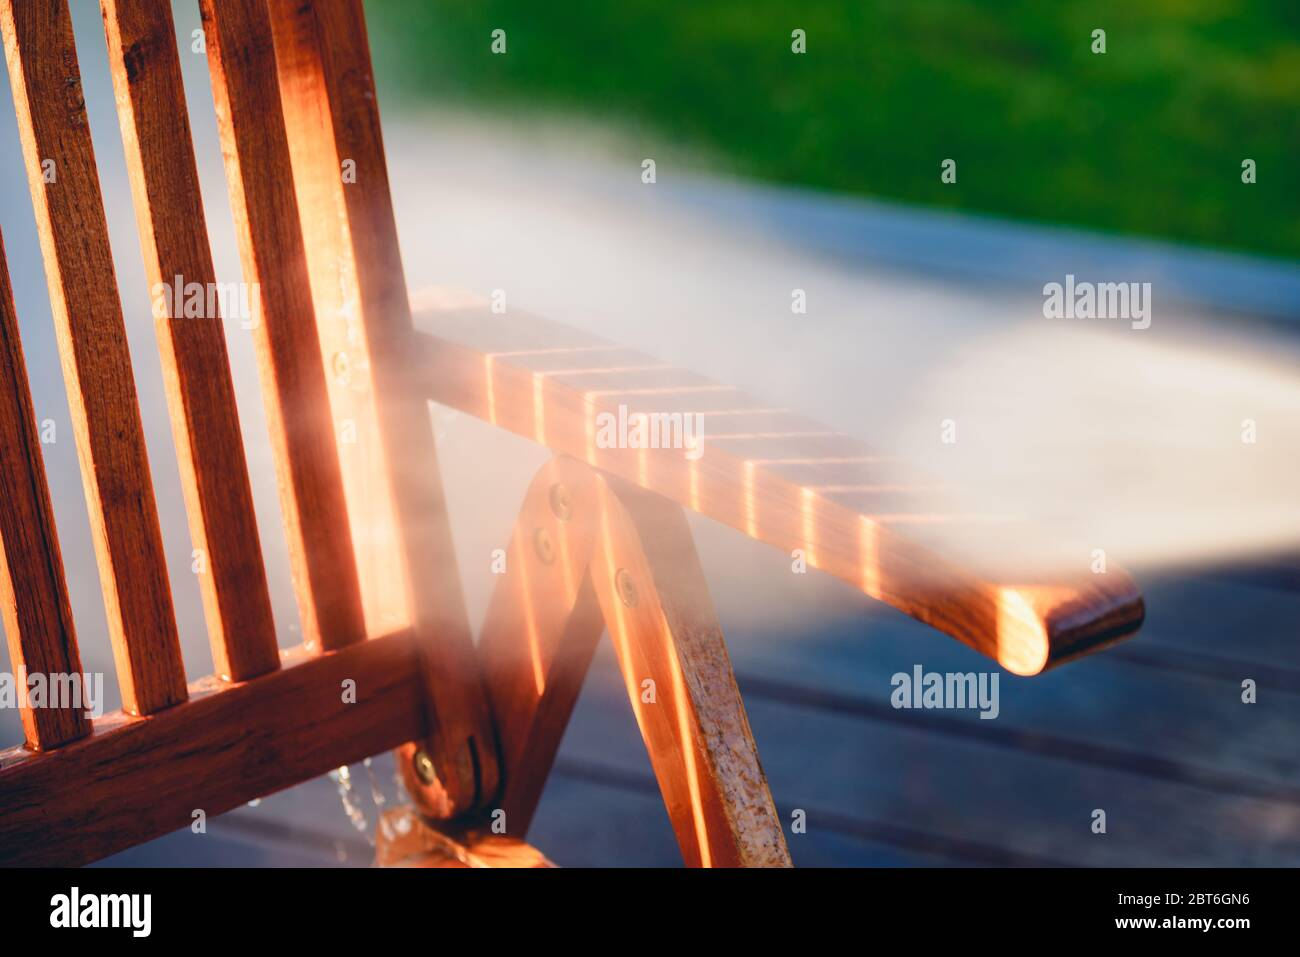 power washing garden furniture - made of exotic wood - very shallow depth of field Stock Photo